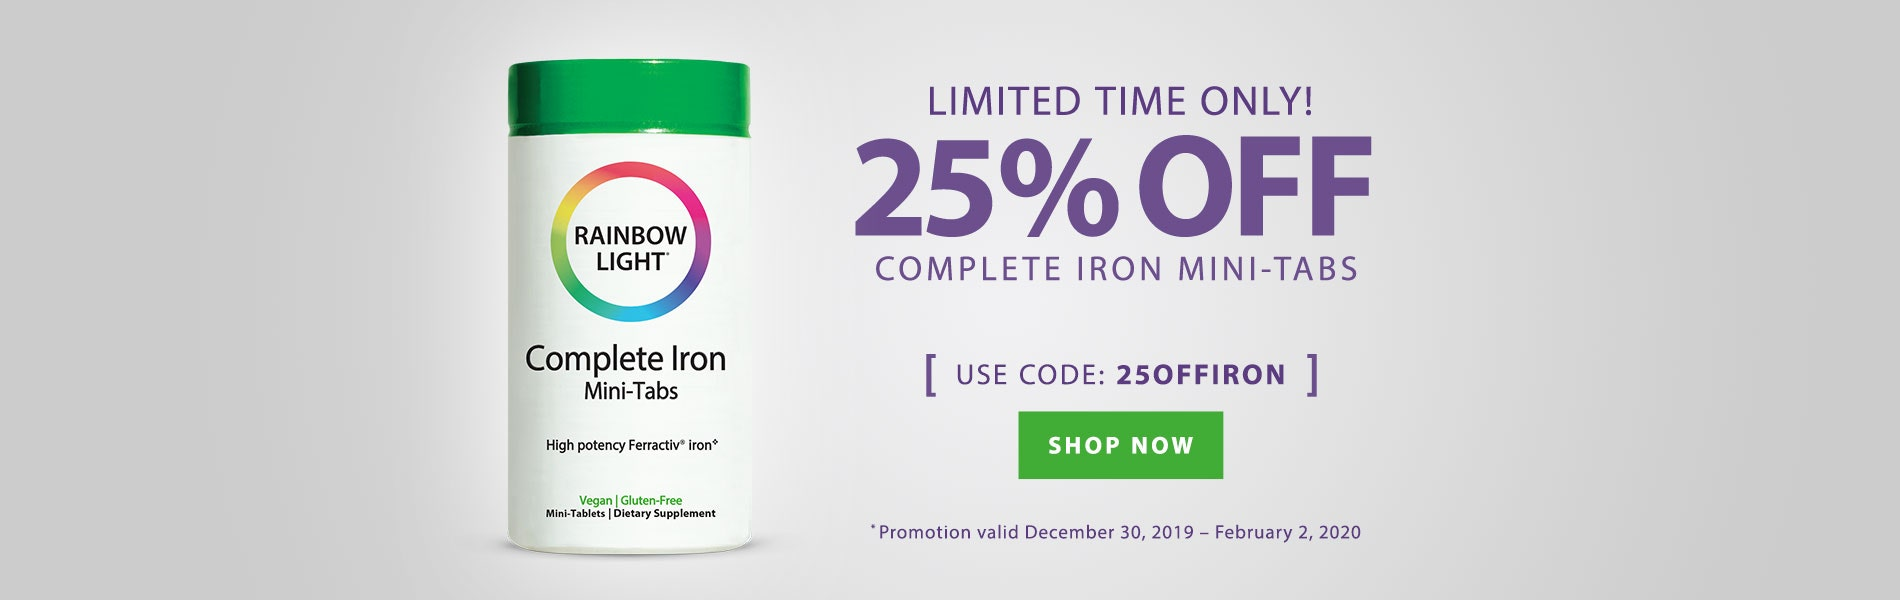 25% OFF Complete Iron Mini-Tabs